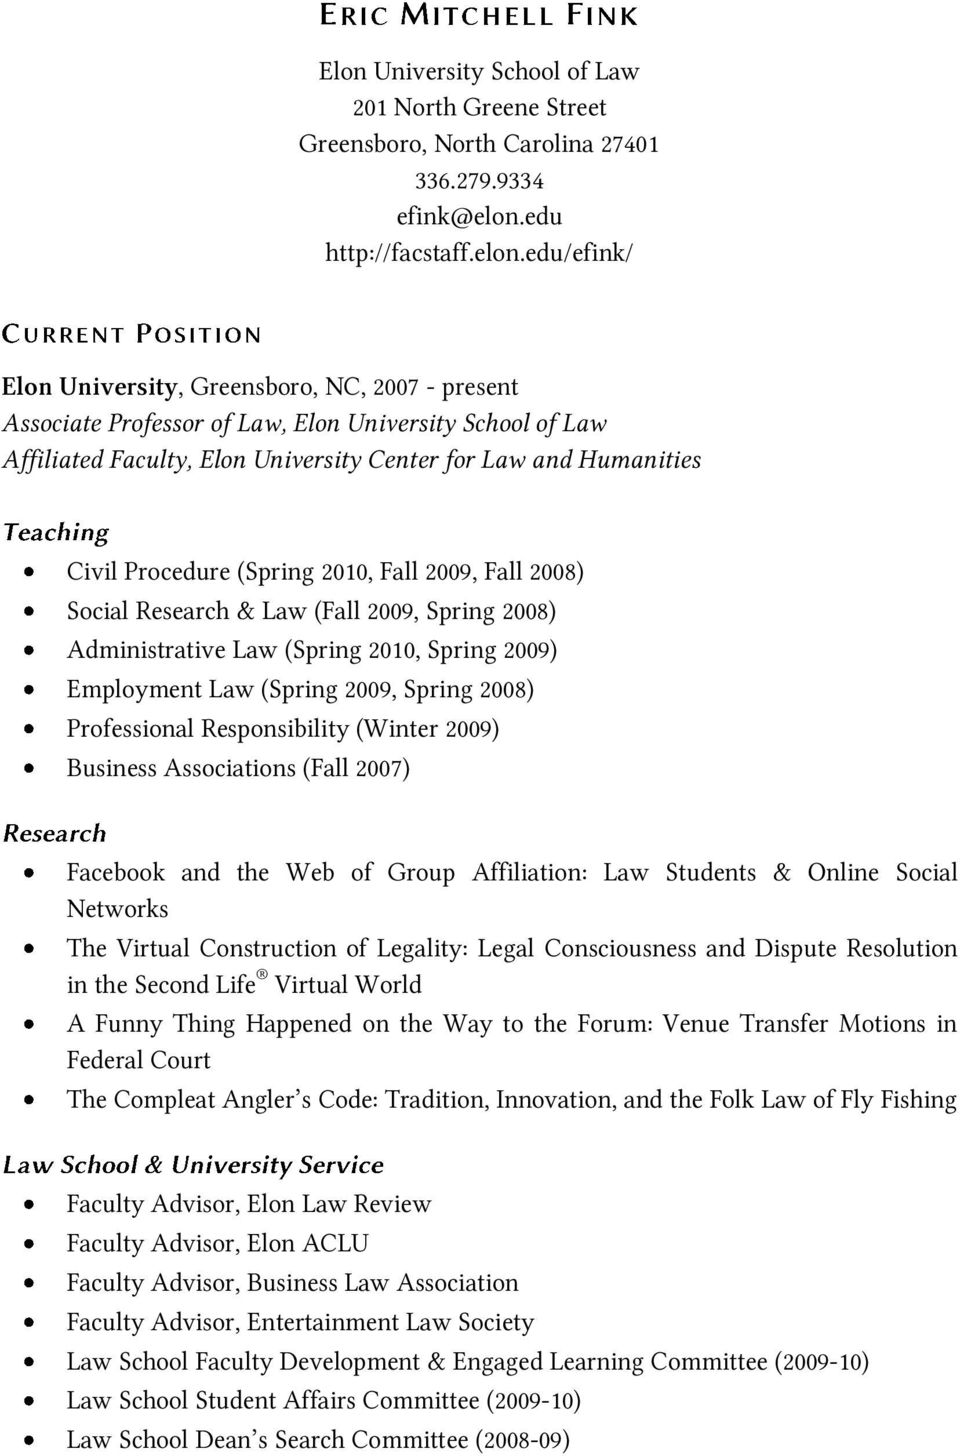 edu/efink/ Elon University, Greensboro, NC, 2007 - present Professor of Law, Elon University School of Law Affiliated Faculty, Elon University Center for Law and Humanities Civil Procedure (Spring